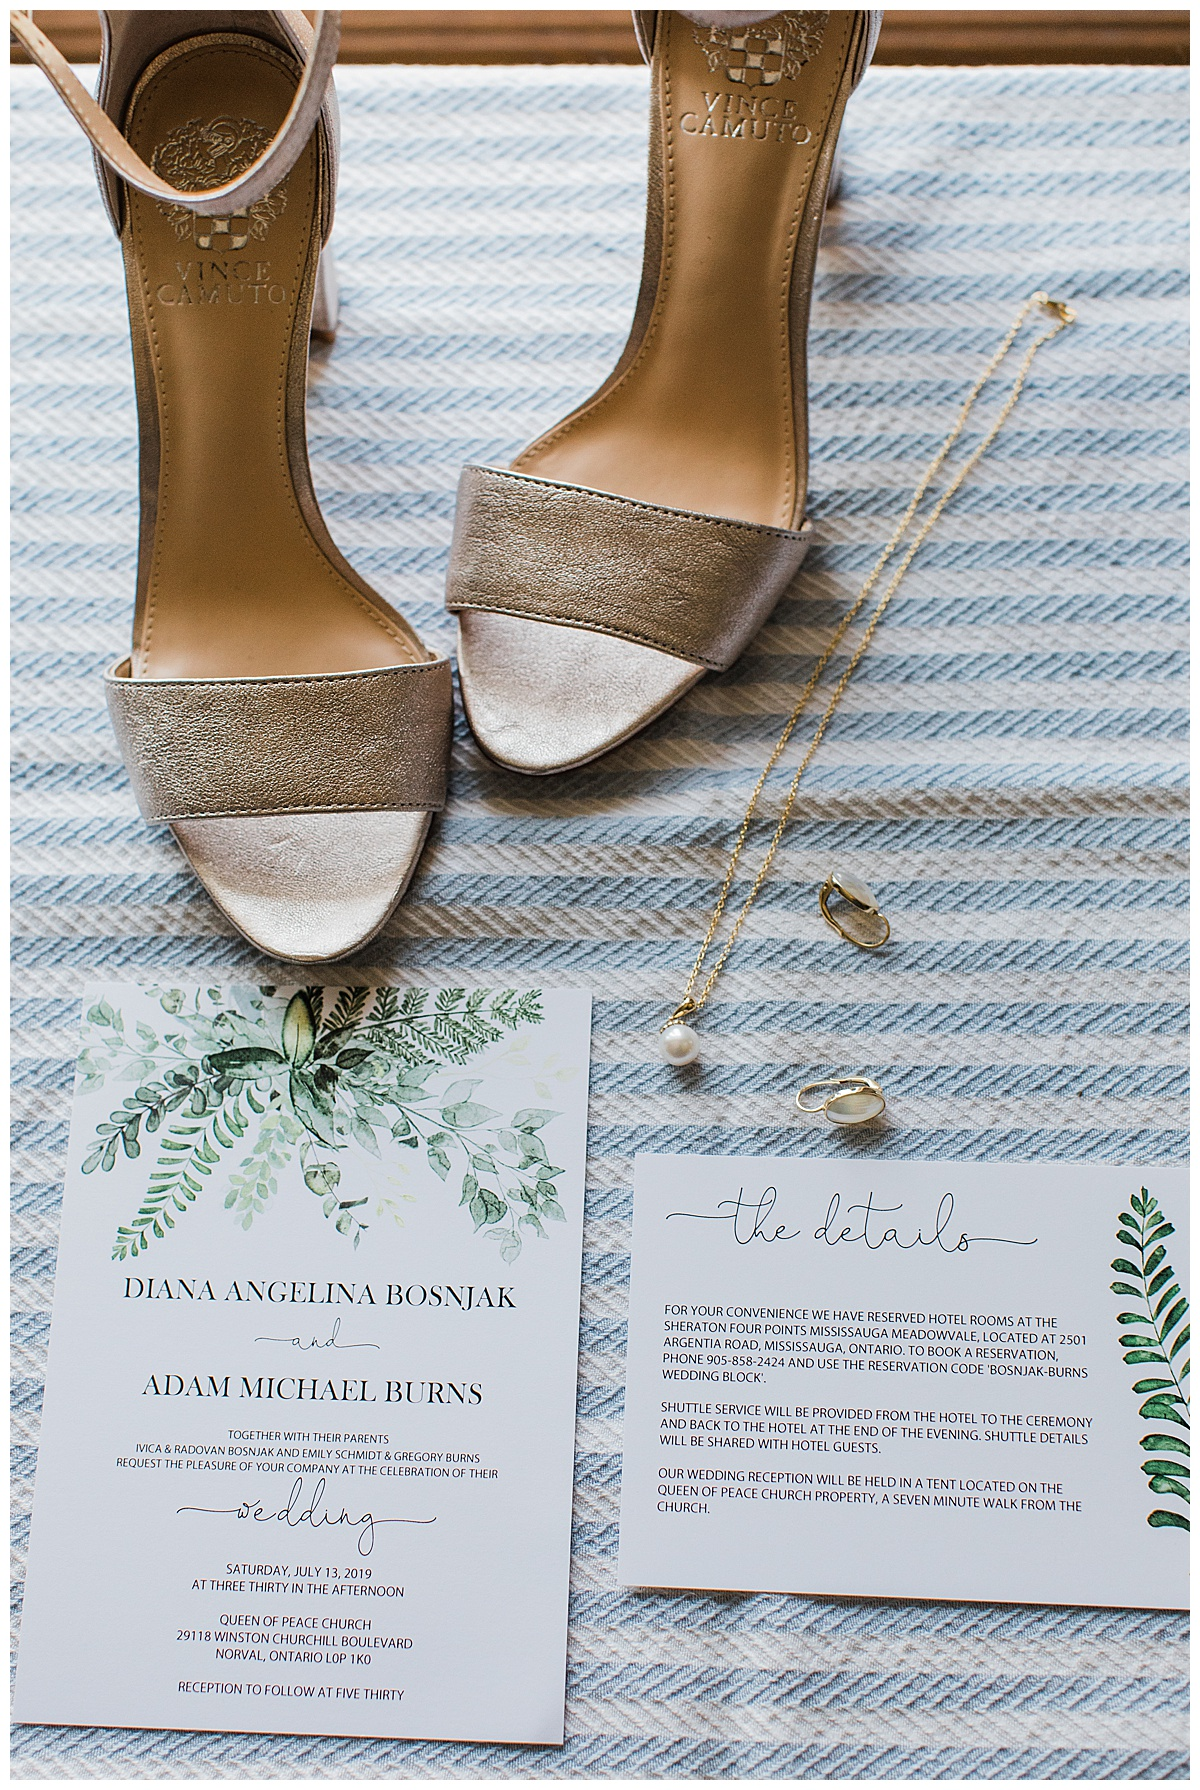 Gold wedding shoes, wedding invitations and bridal jewelry| Georgetown, Ontario Wedding| Toronto Wedding Photographer| 3photography